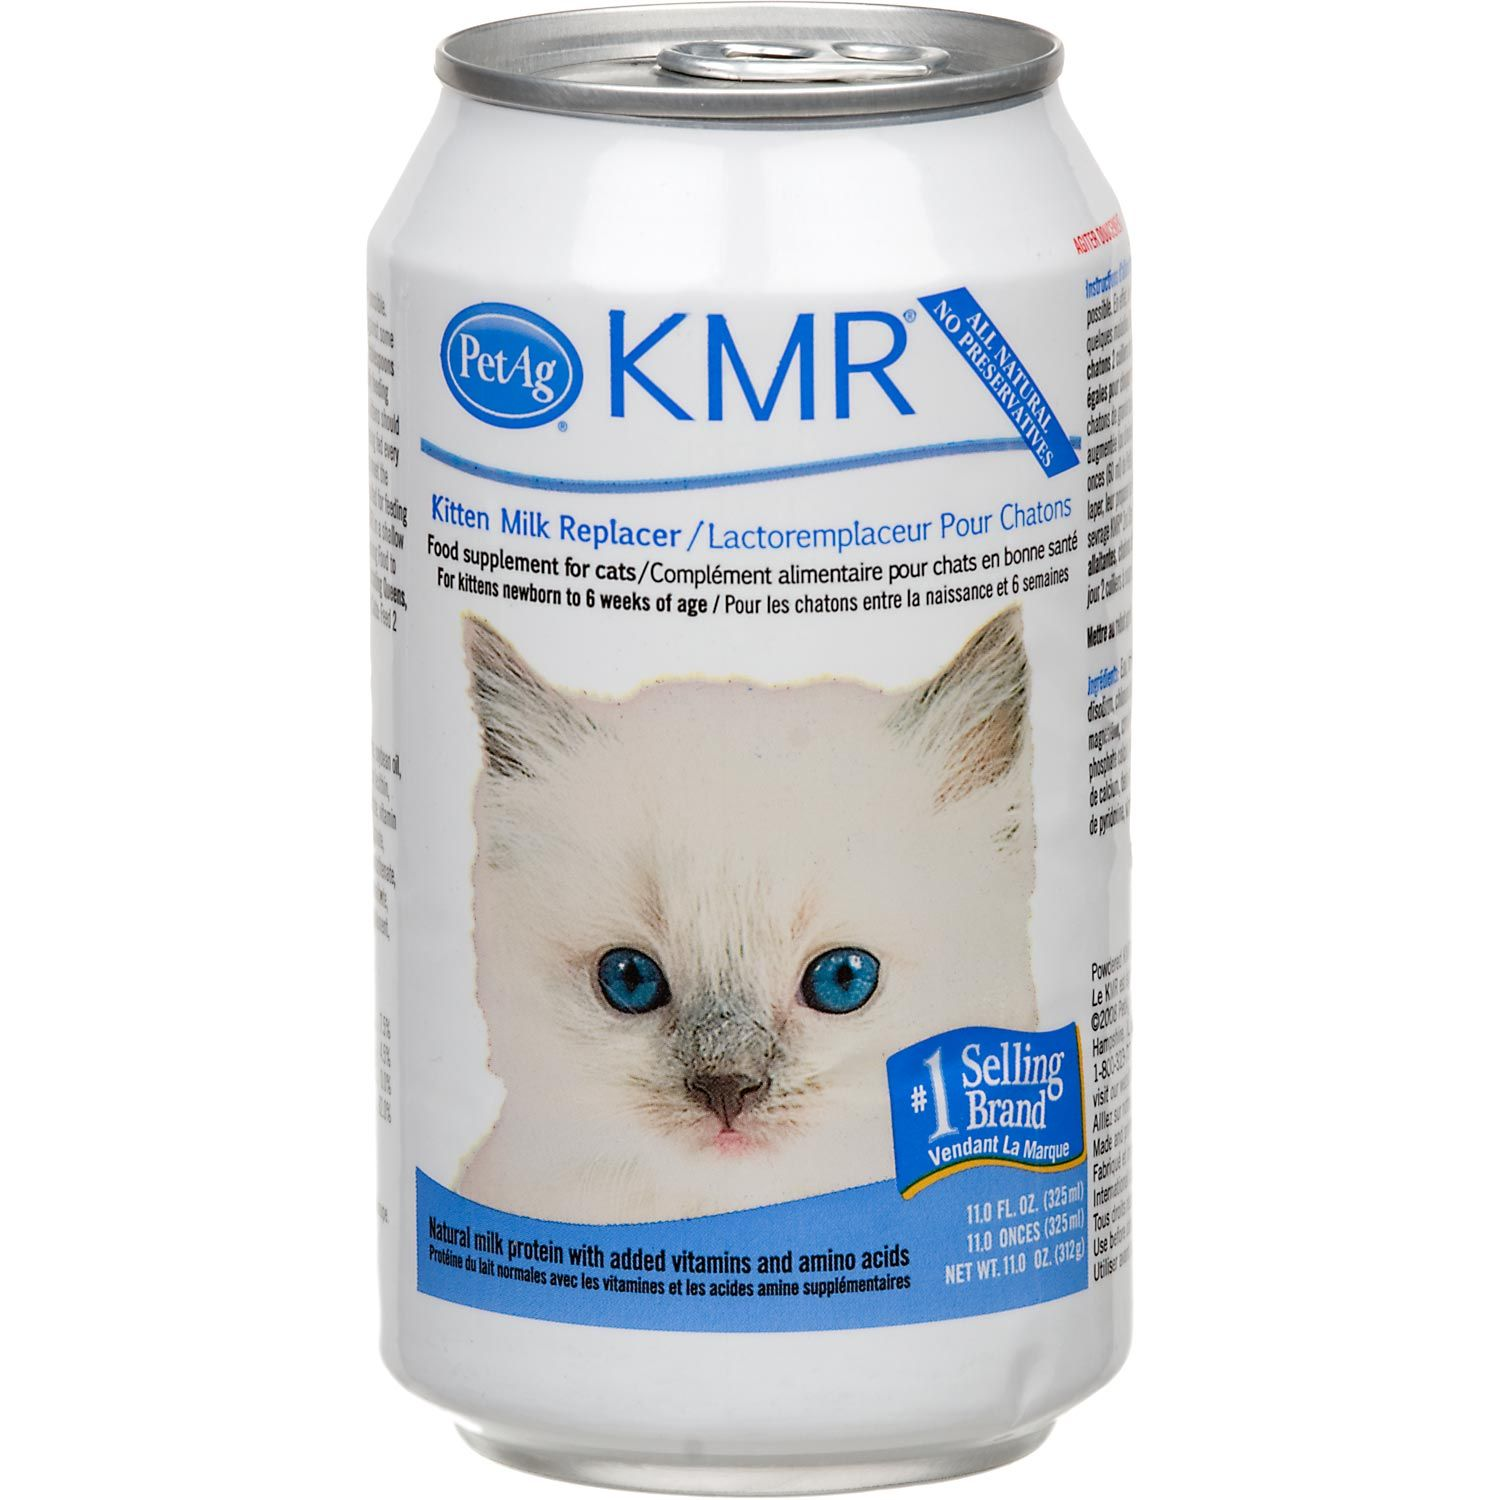 Used For The Kittens When They Were 3 4 Weeks Petag Kmr Milk Replacer Food Supplements For Kittens Small Animals Liqu Pet Supplies Cat Pet Supplies Cat Food